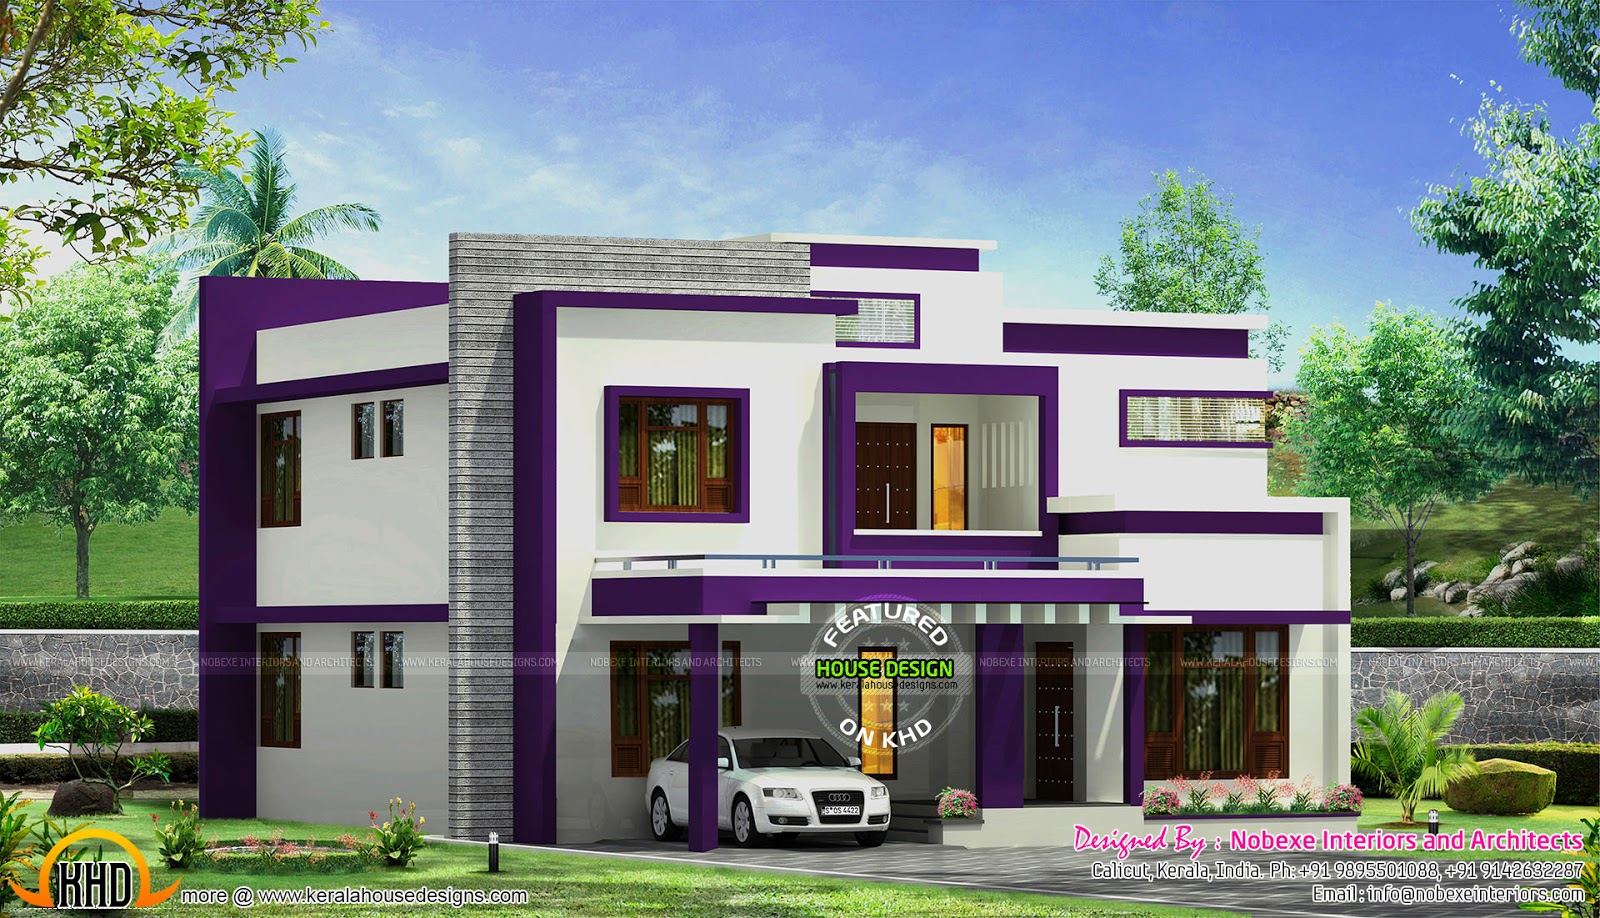 Contemporary home design by nobexe interiors kerala home for New modern house interior design